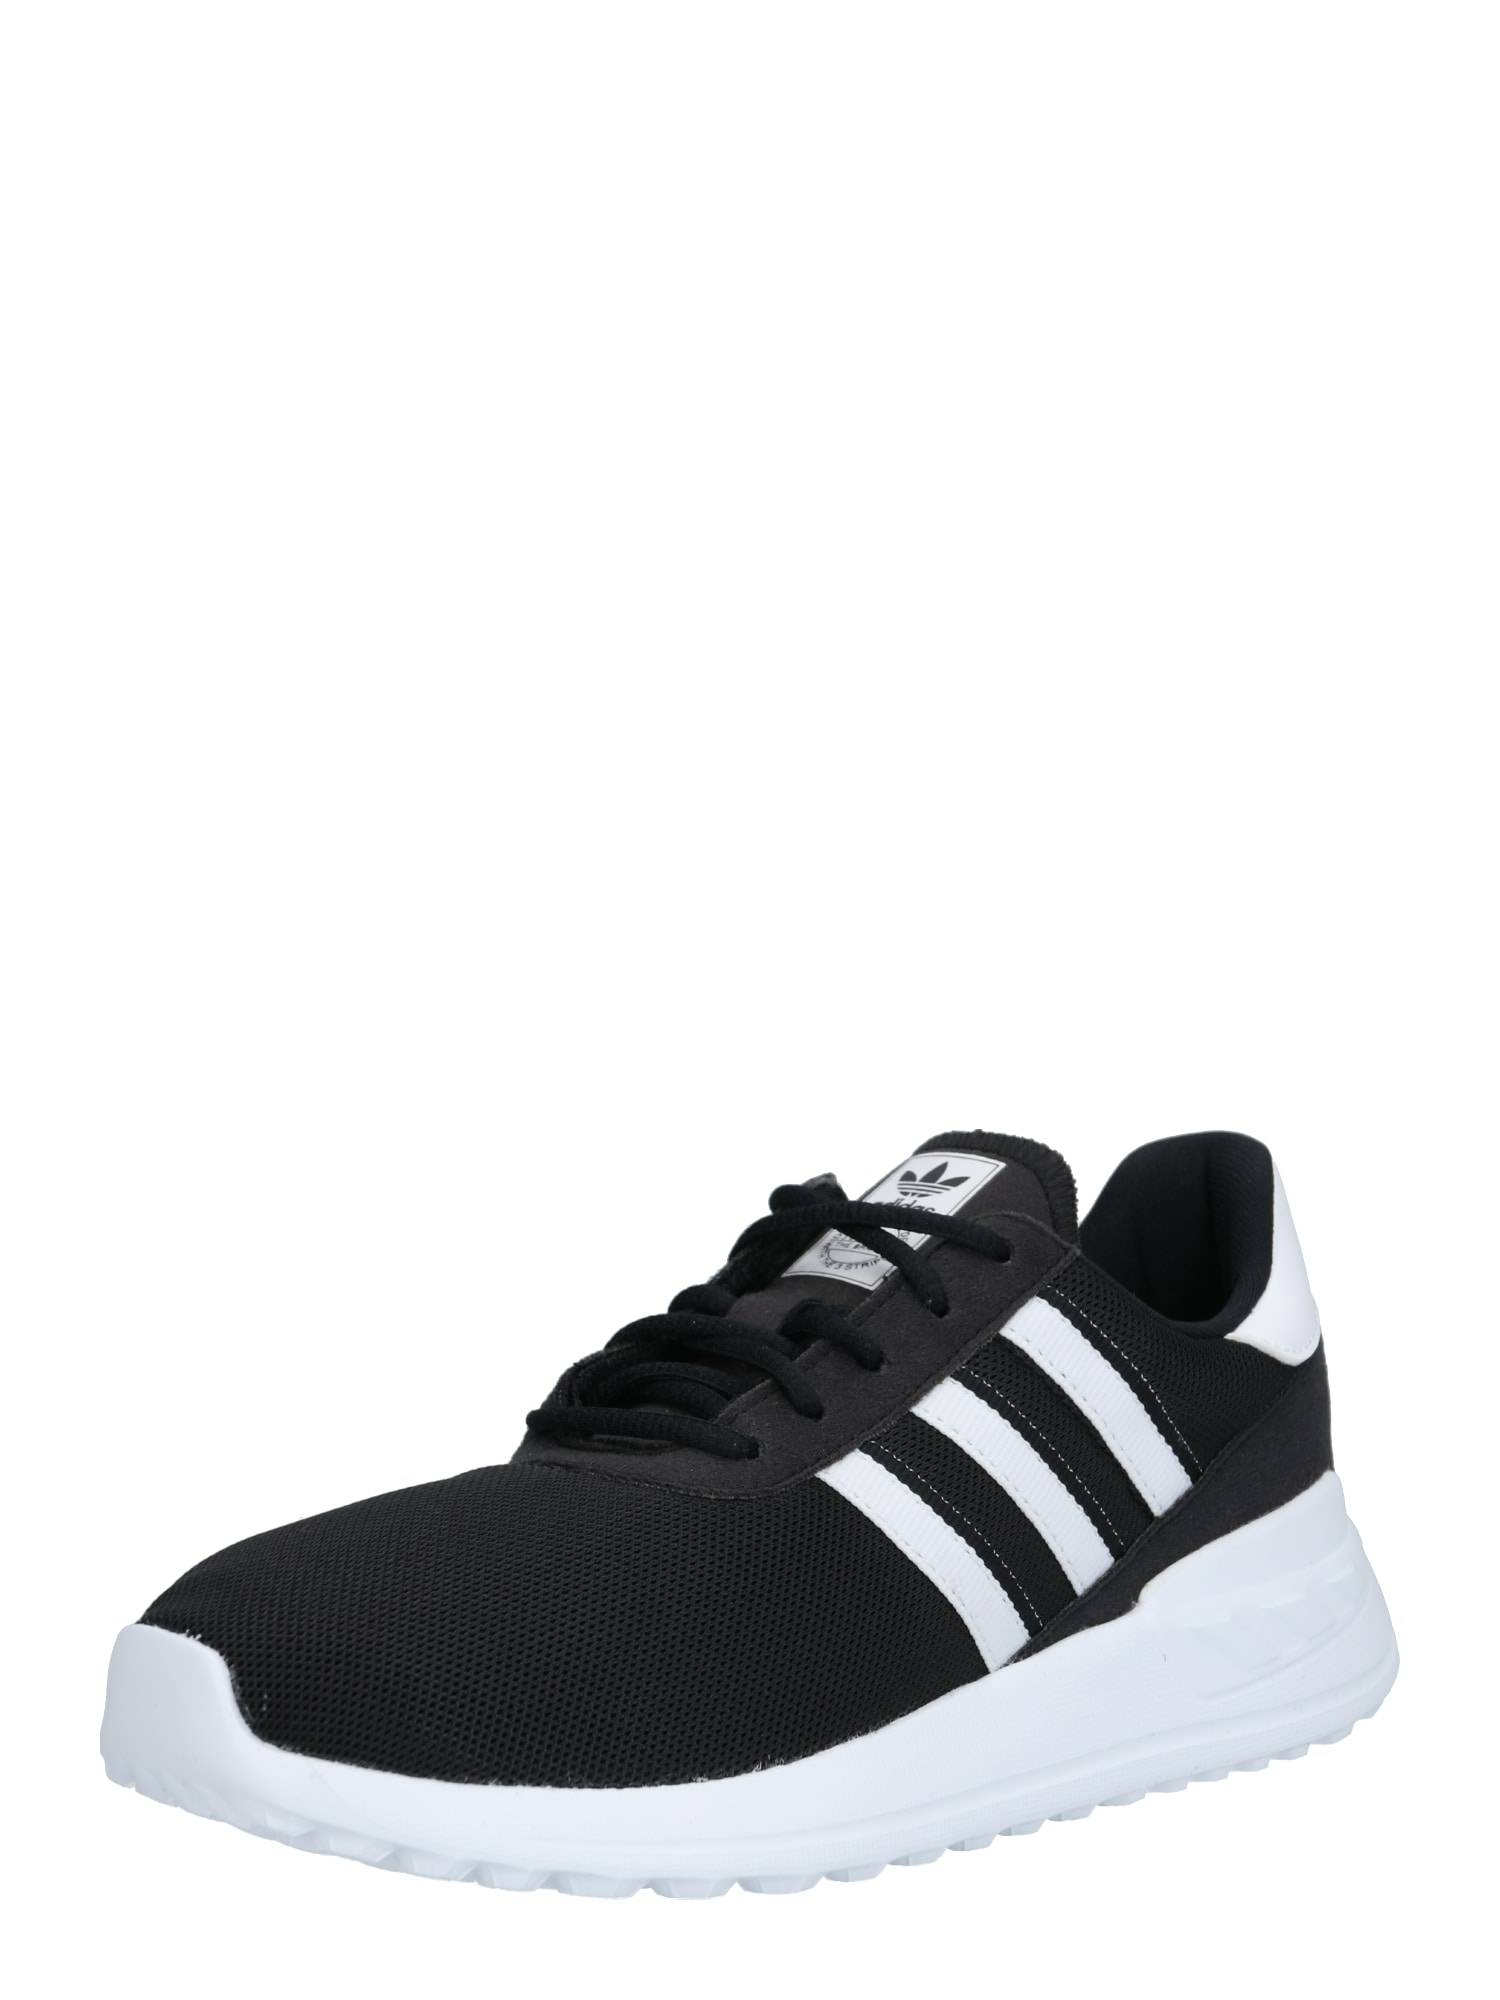 ADIDAS ORIGINALS Baskets 'La Trainer Lite'  - Noir - Taille: 33 - boy